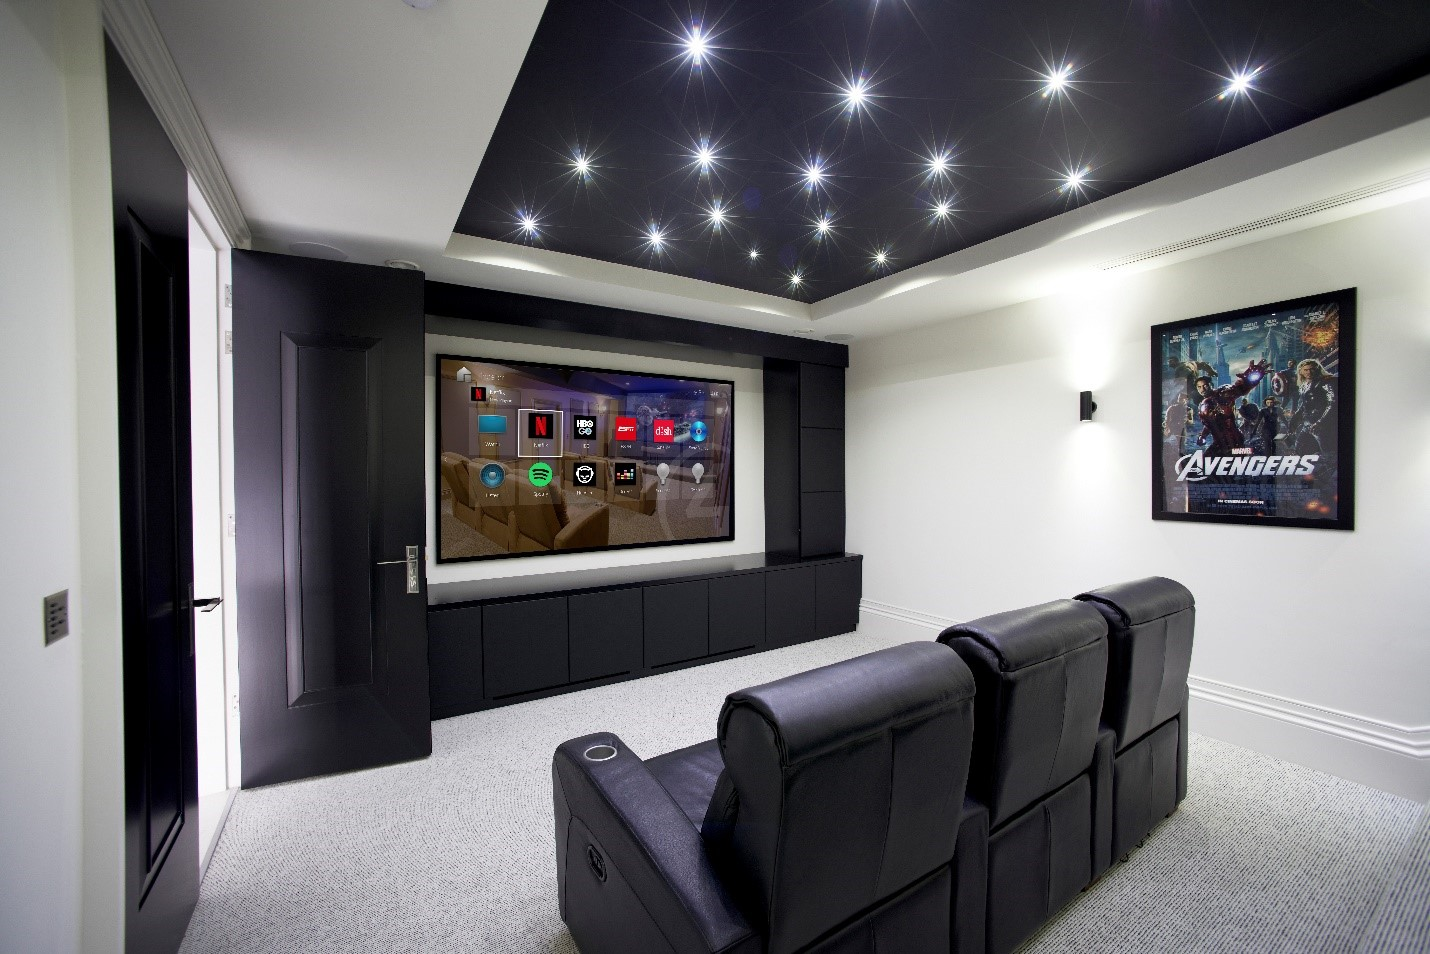 Immersive Audio Makes Your Home Theater Sound Like a Megaplex